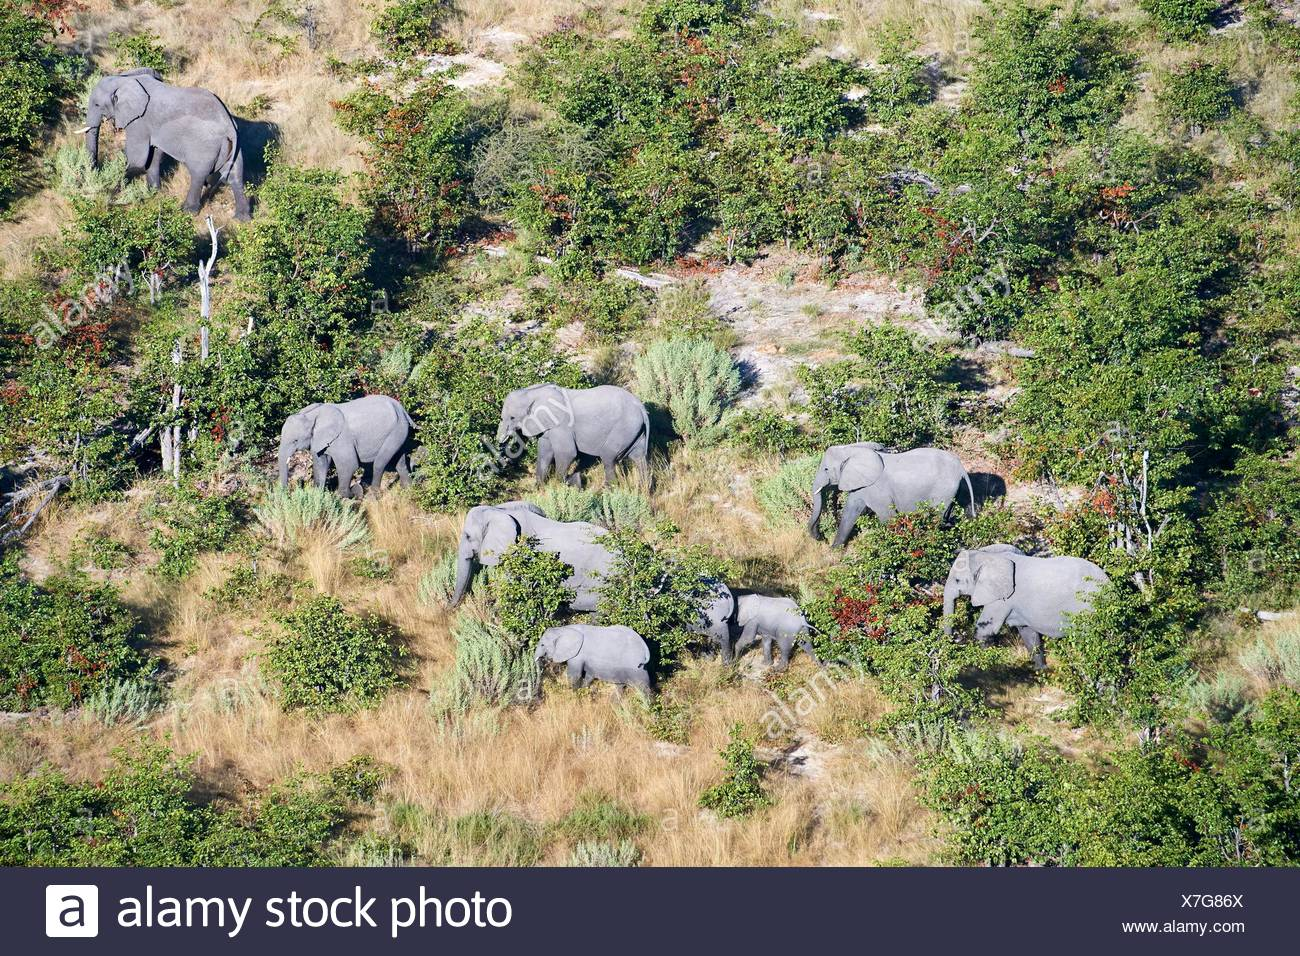 Aerial view of herd of African elephants (Loxodonta africana) walking on dry land, Okavango delta, Botswana, Africa. Stock Photo